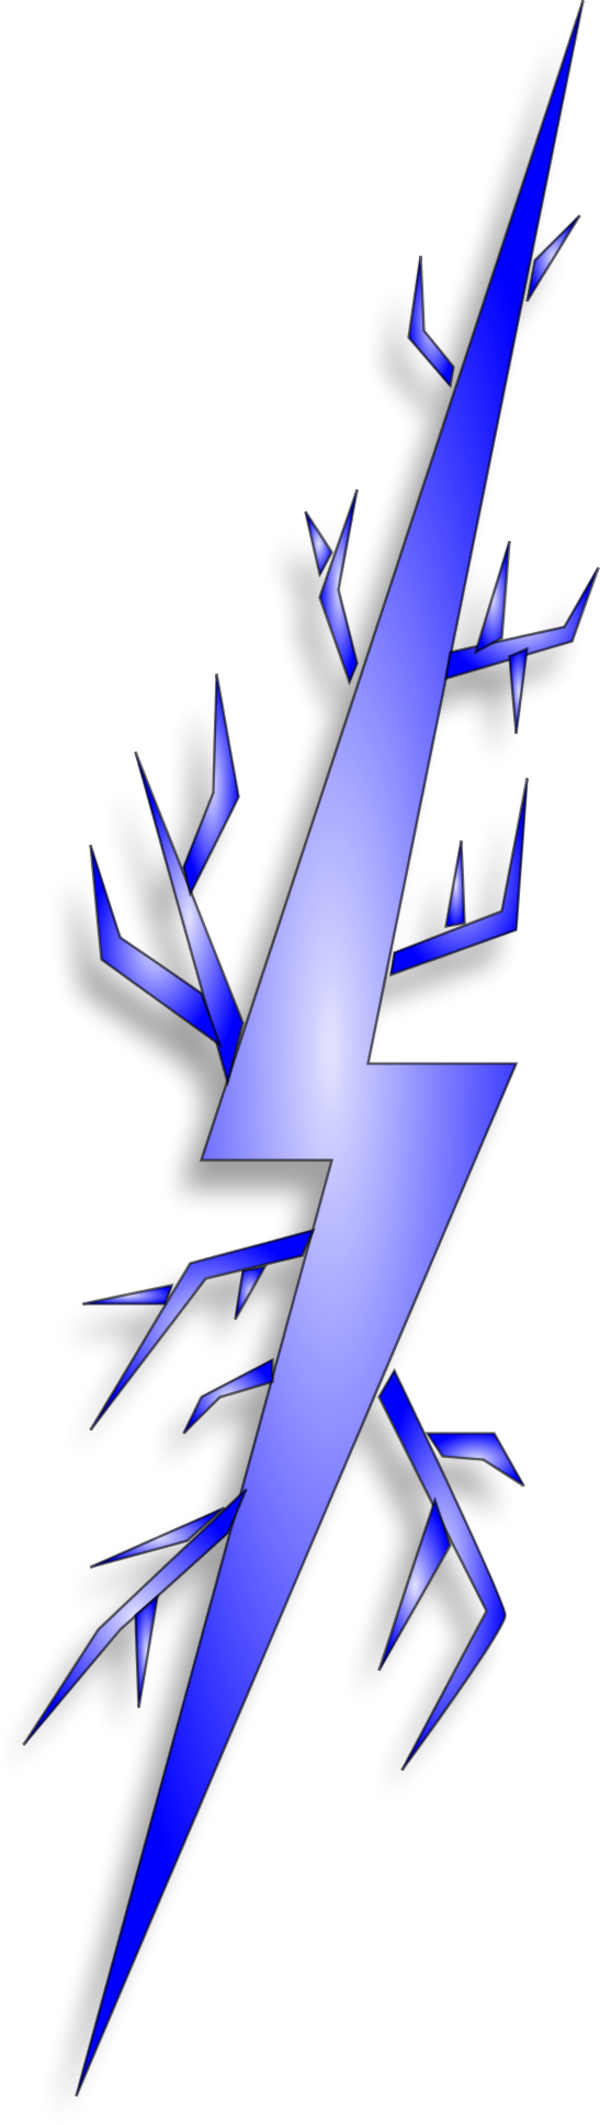 Lightning clipart lightning flash. Free cliparts download clip